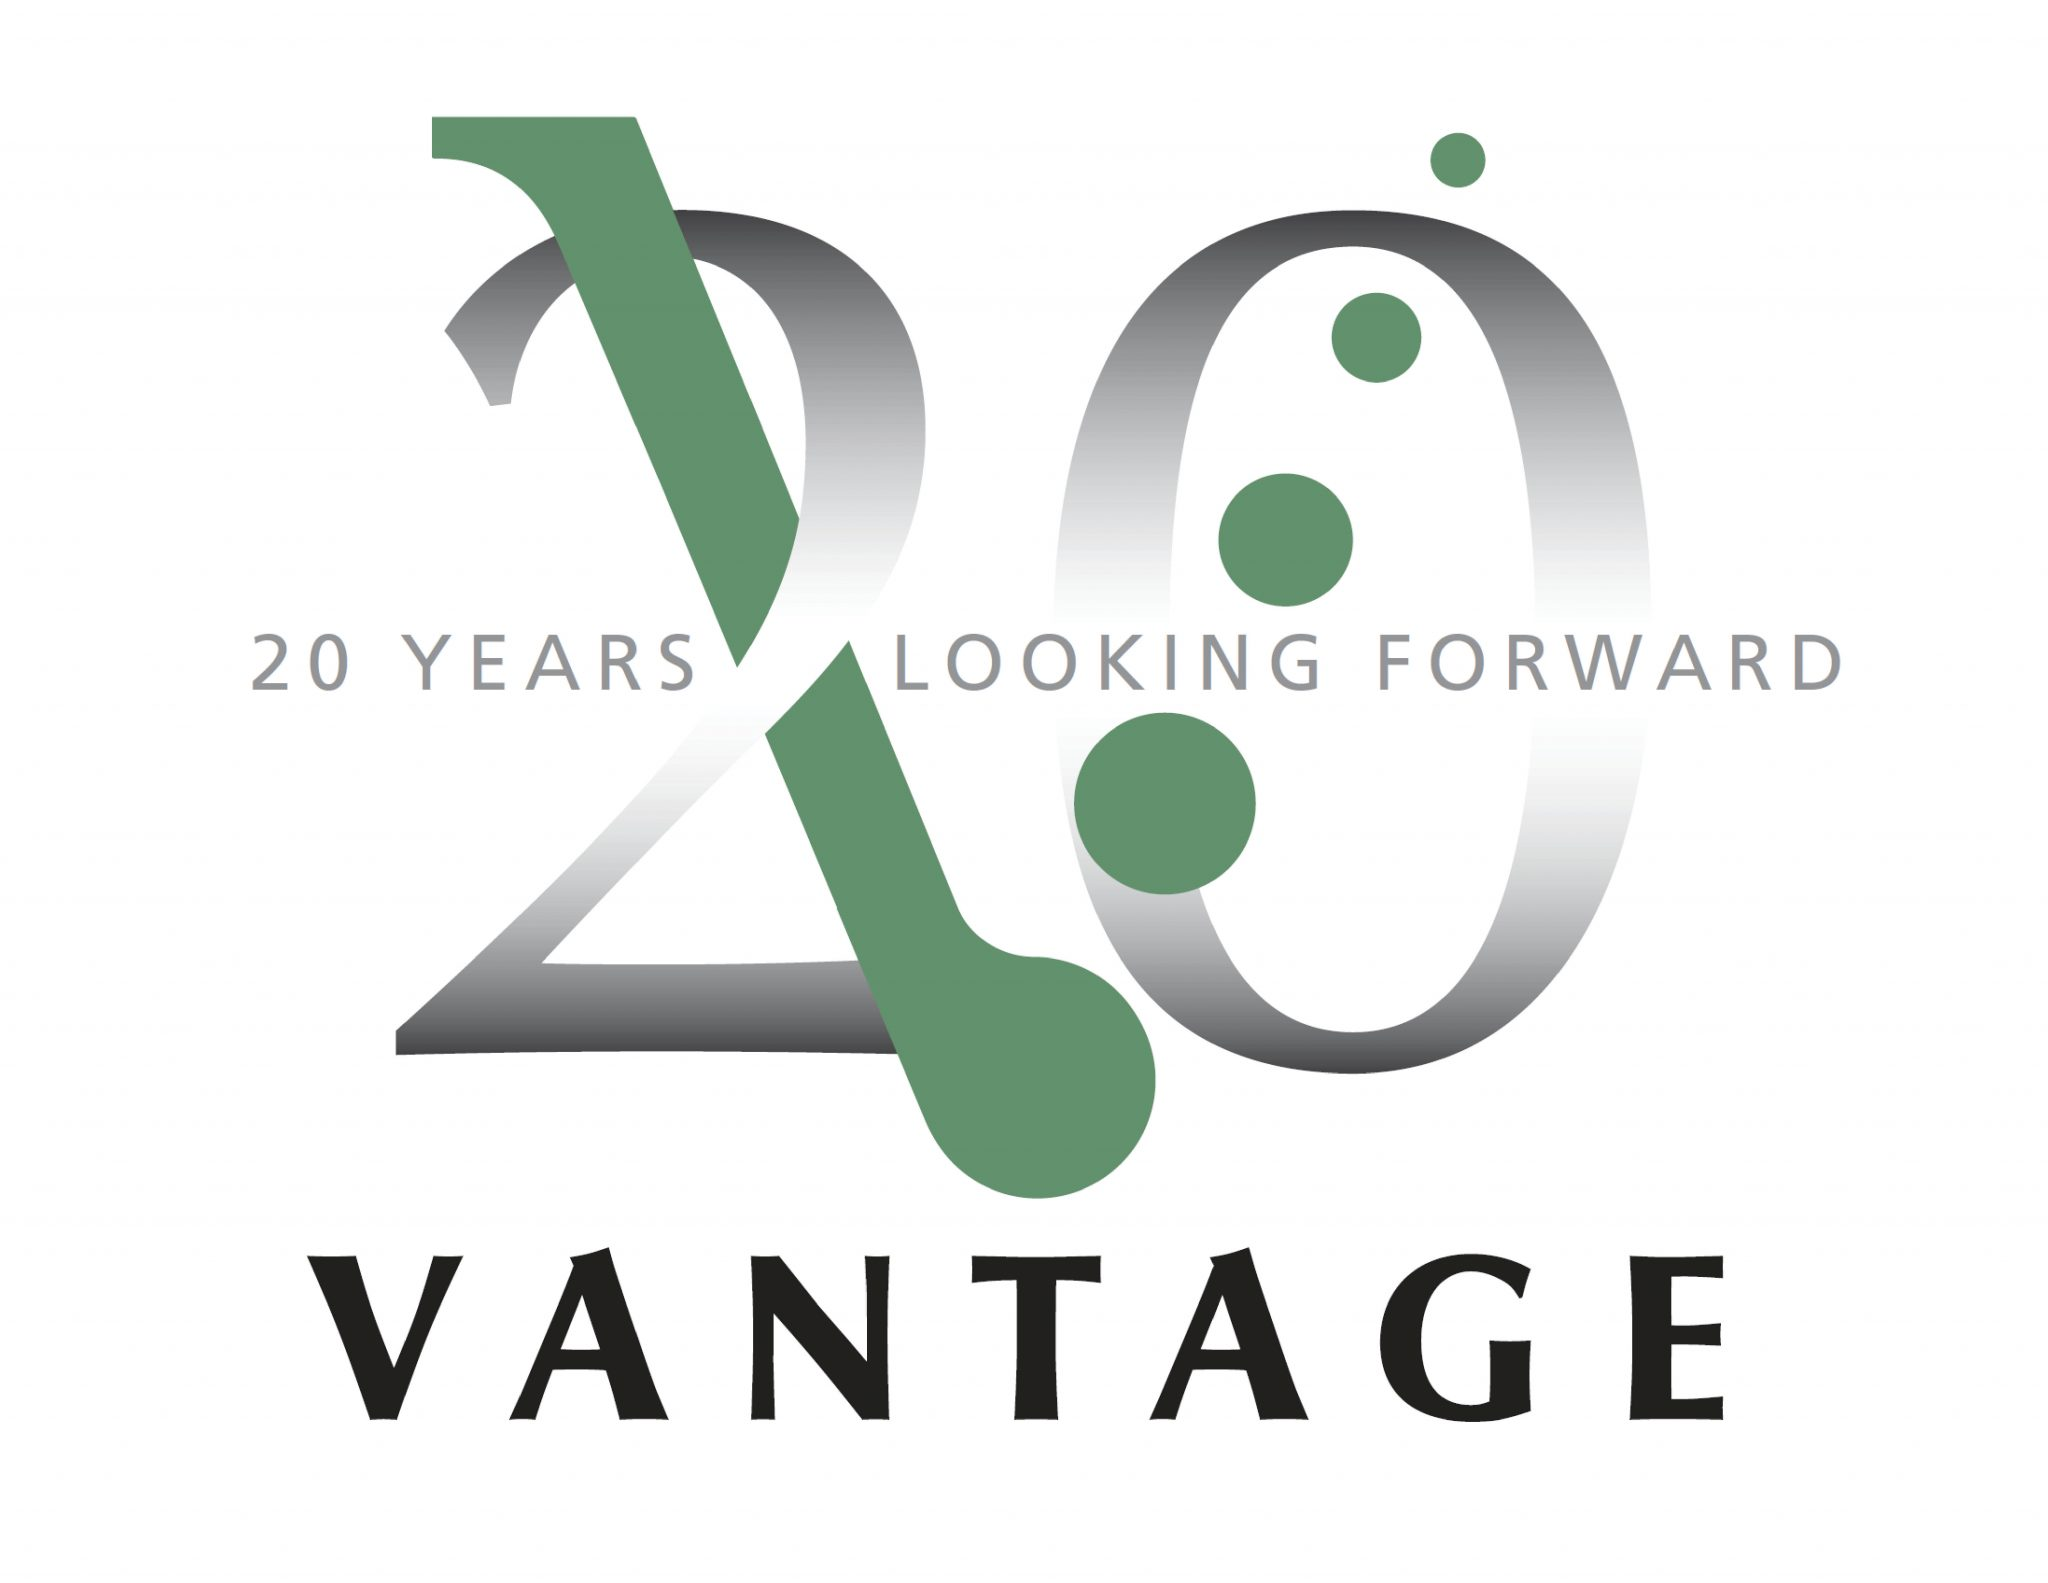 Vantage Technology Consulting Group